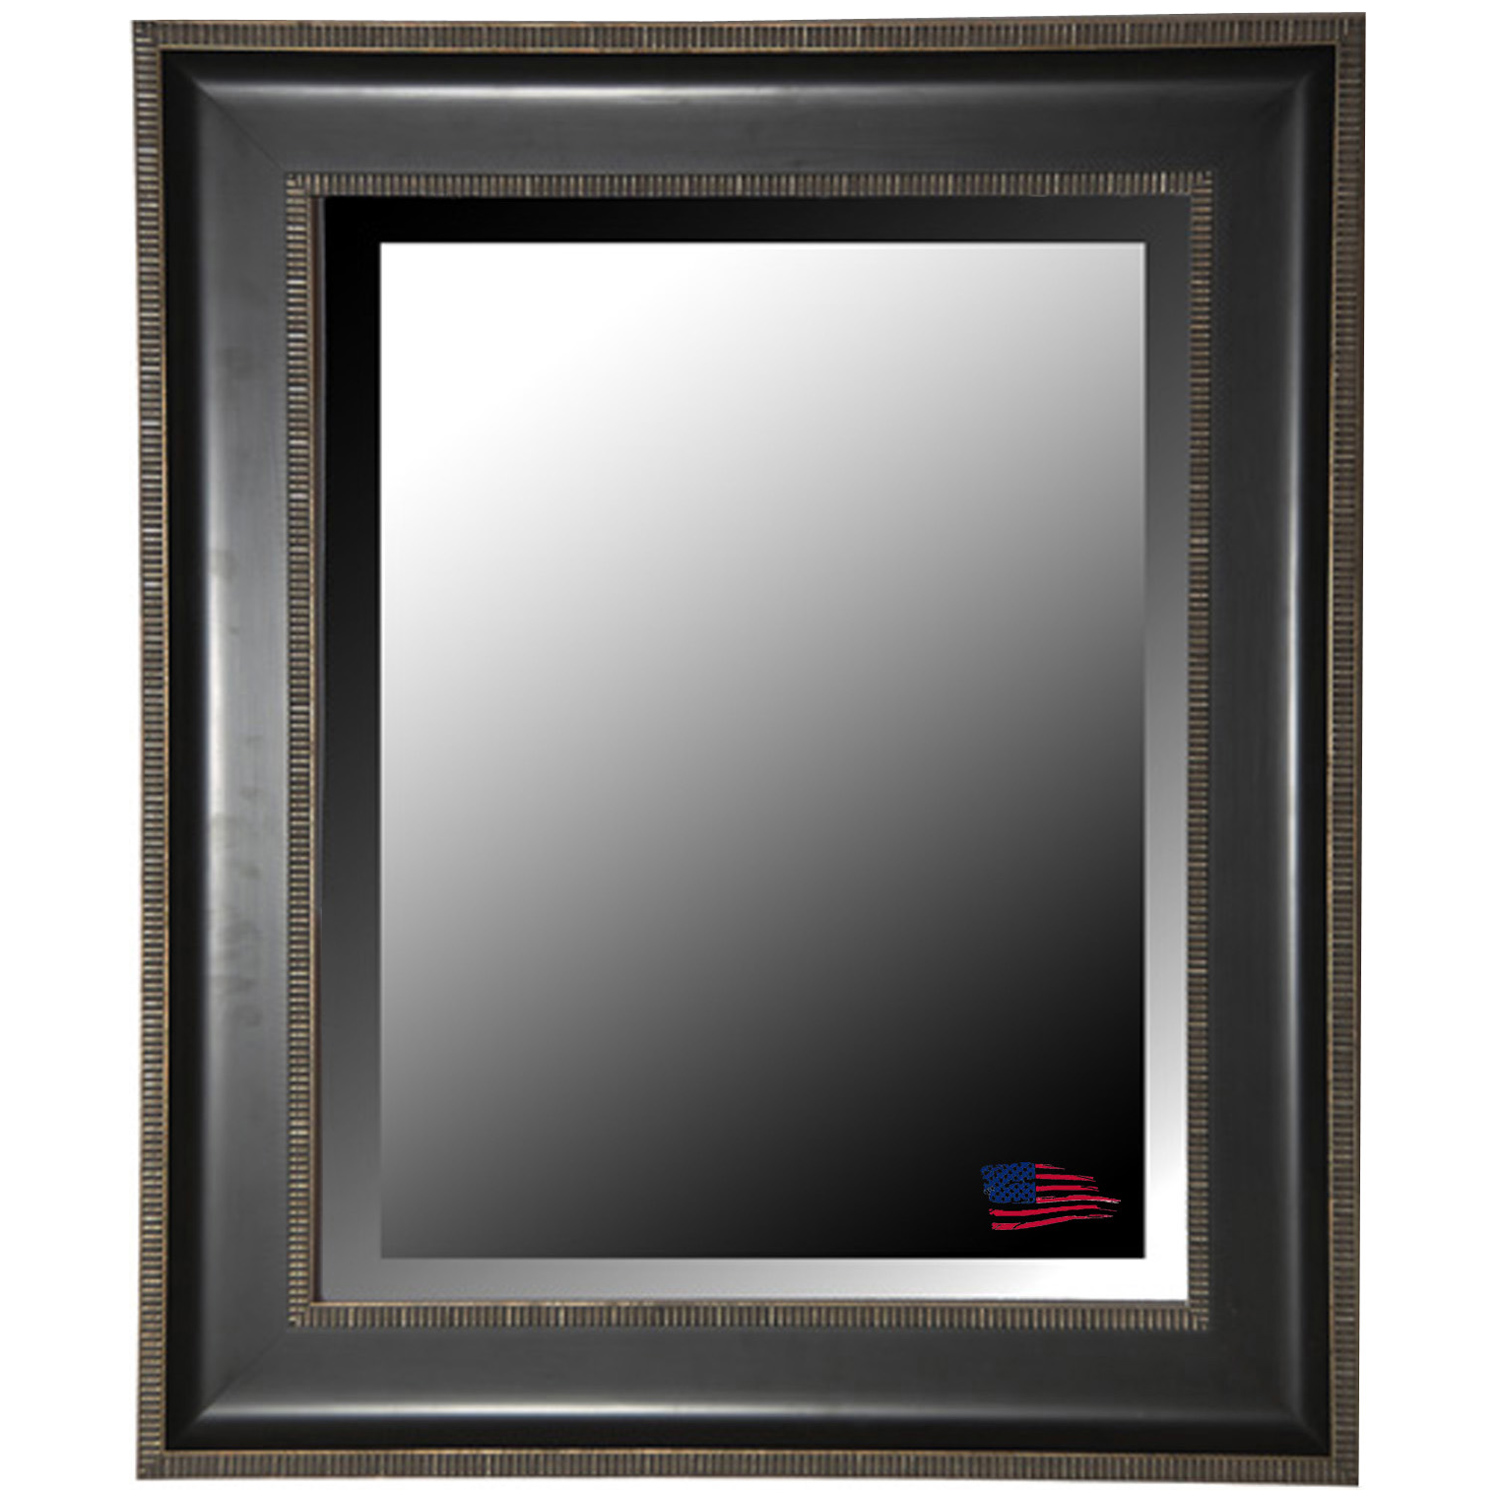 Wall Mirror - Black & Silver Caged Trim Frame, Beveled Glass - RAY-R008